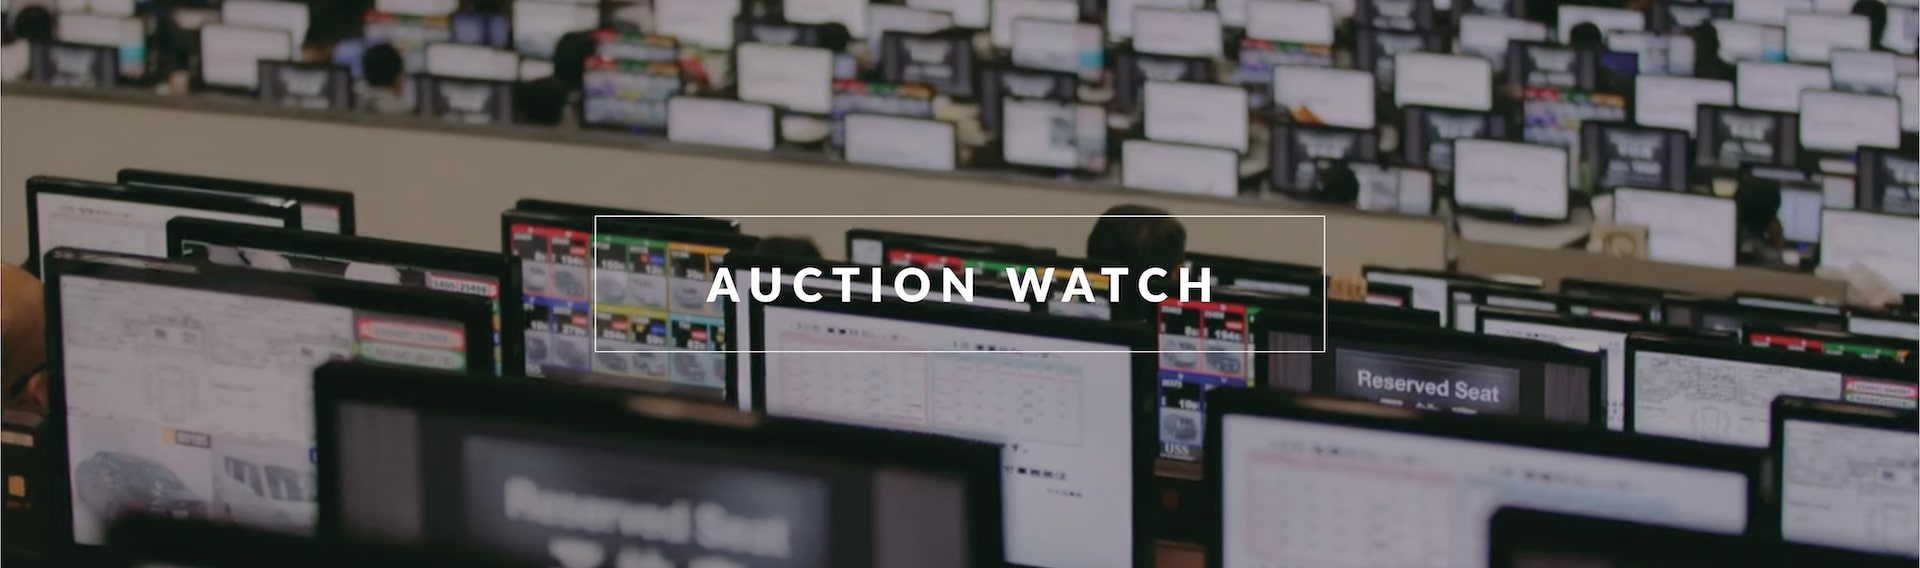 Auction Watch